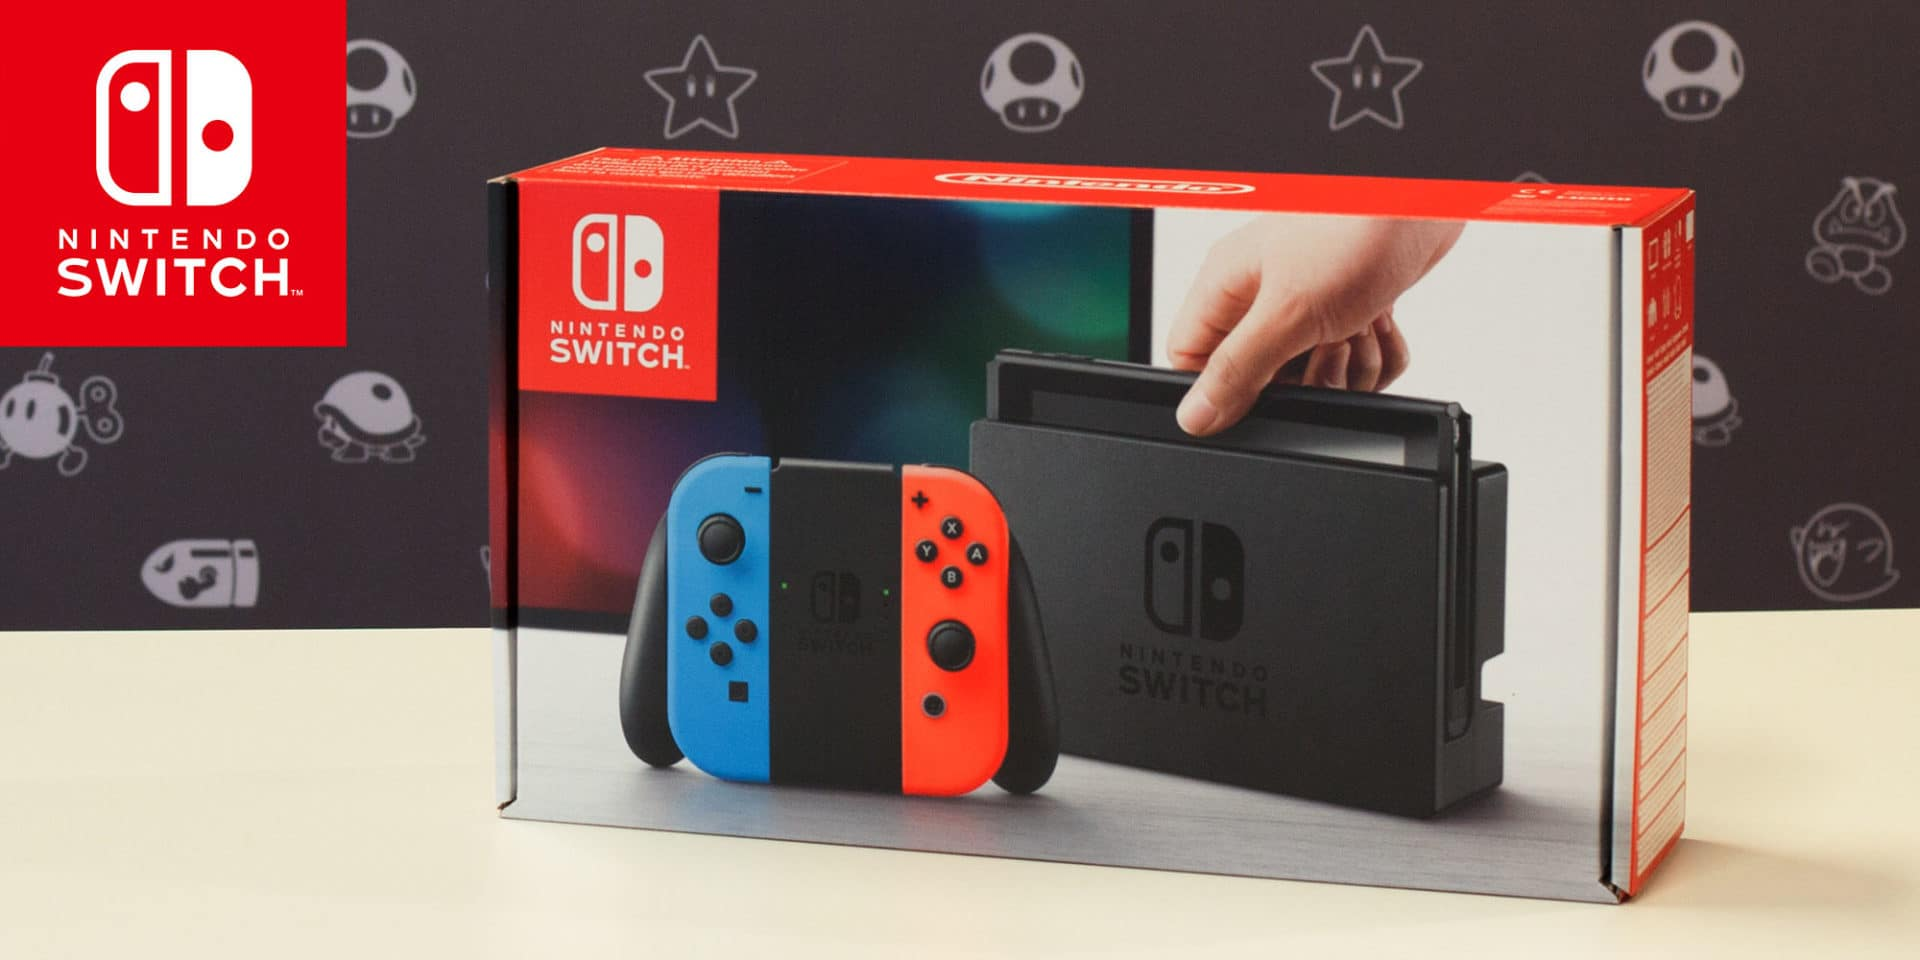 3,8 miljoen+ Nintendo Switch units verkocht in Japan